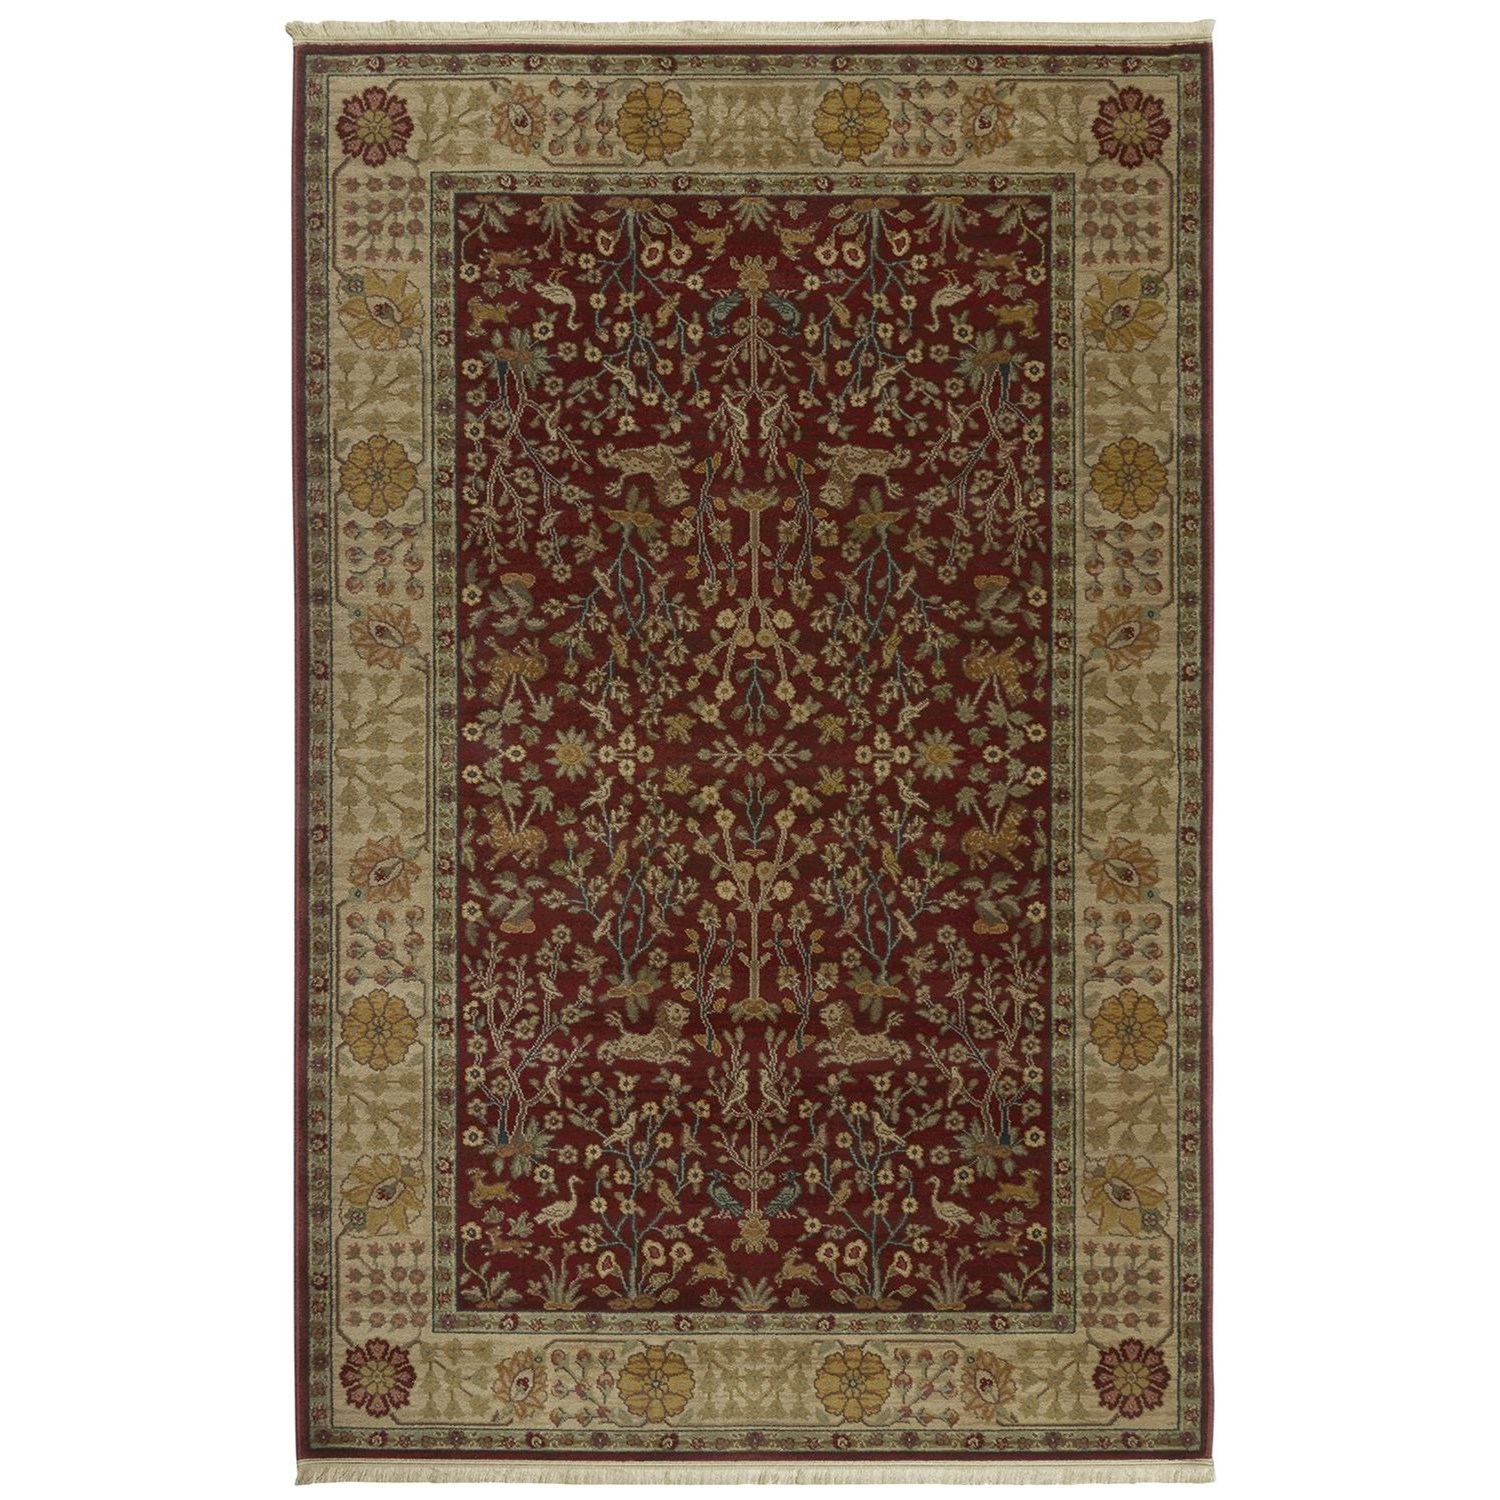 Antique Legends 4'3x6' Emperor's Hunt Rug by Karastan Rugs at Alison Craig Home Furnishings